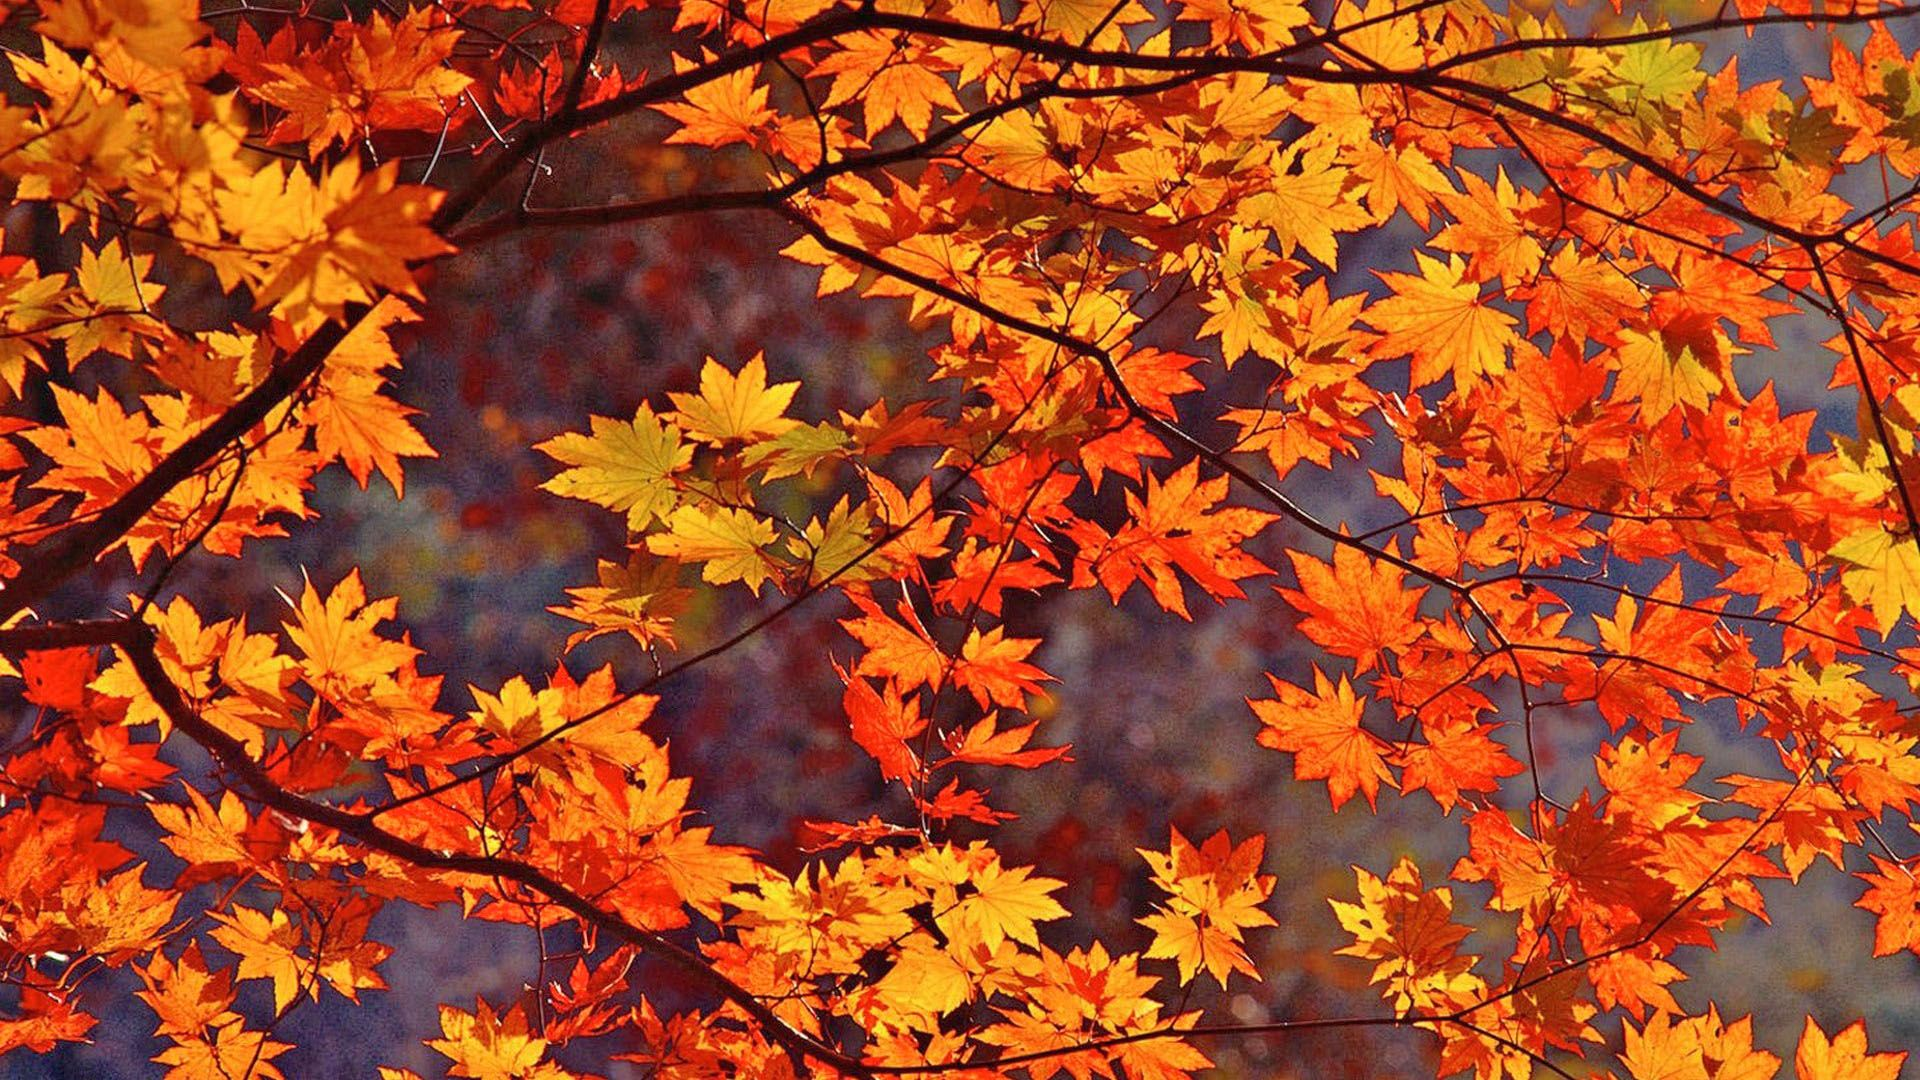 22 Reasons To Love Fall Free Fall Wallpaper Fall Wallpaper Autumn Leaves Wallpaper